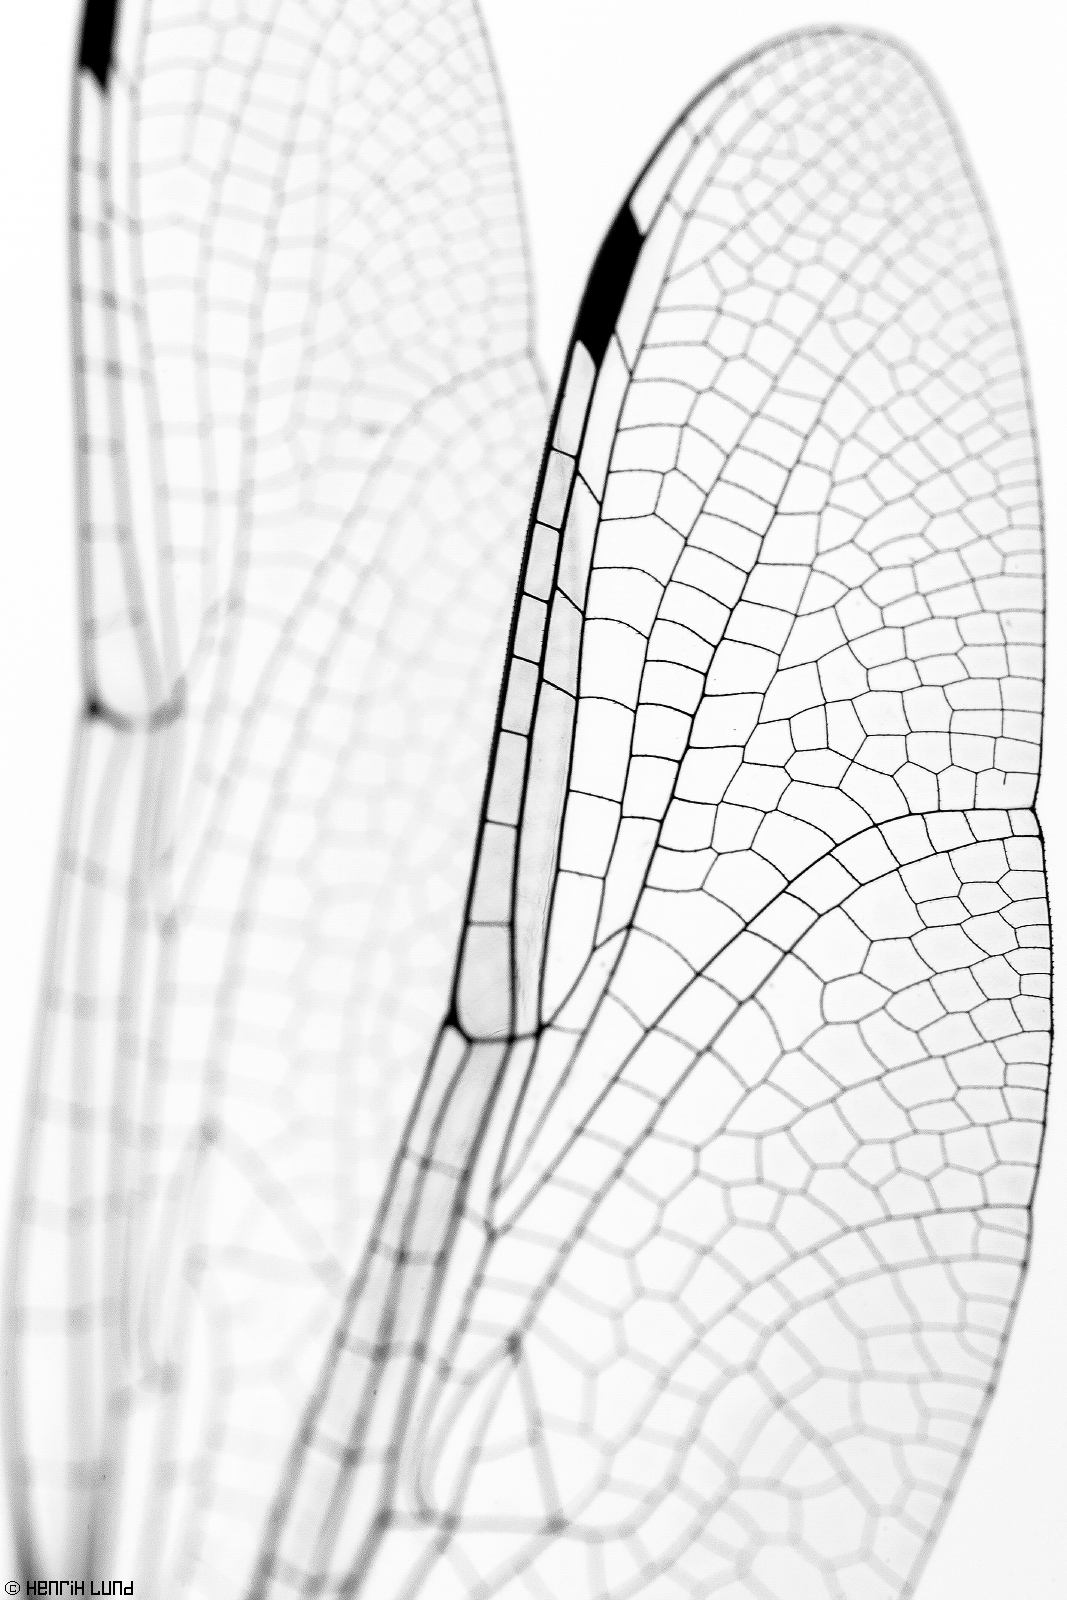 Wings of a dragonfly in detail - converted to BW. Bodö, Borgå, Finland. July, 2014